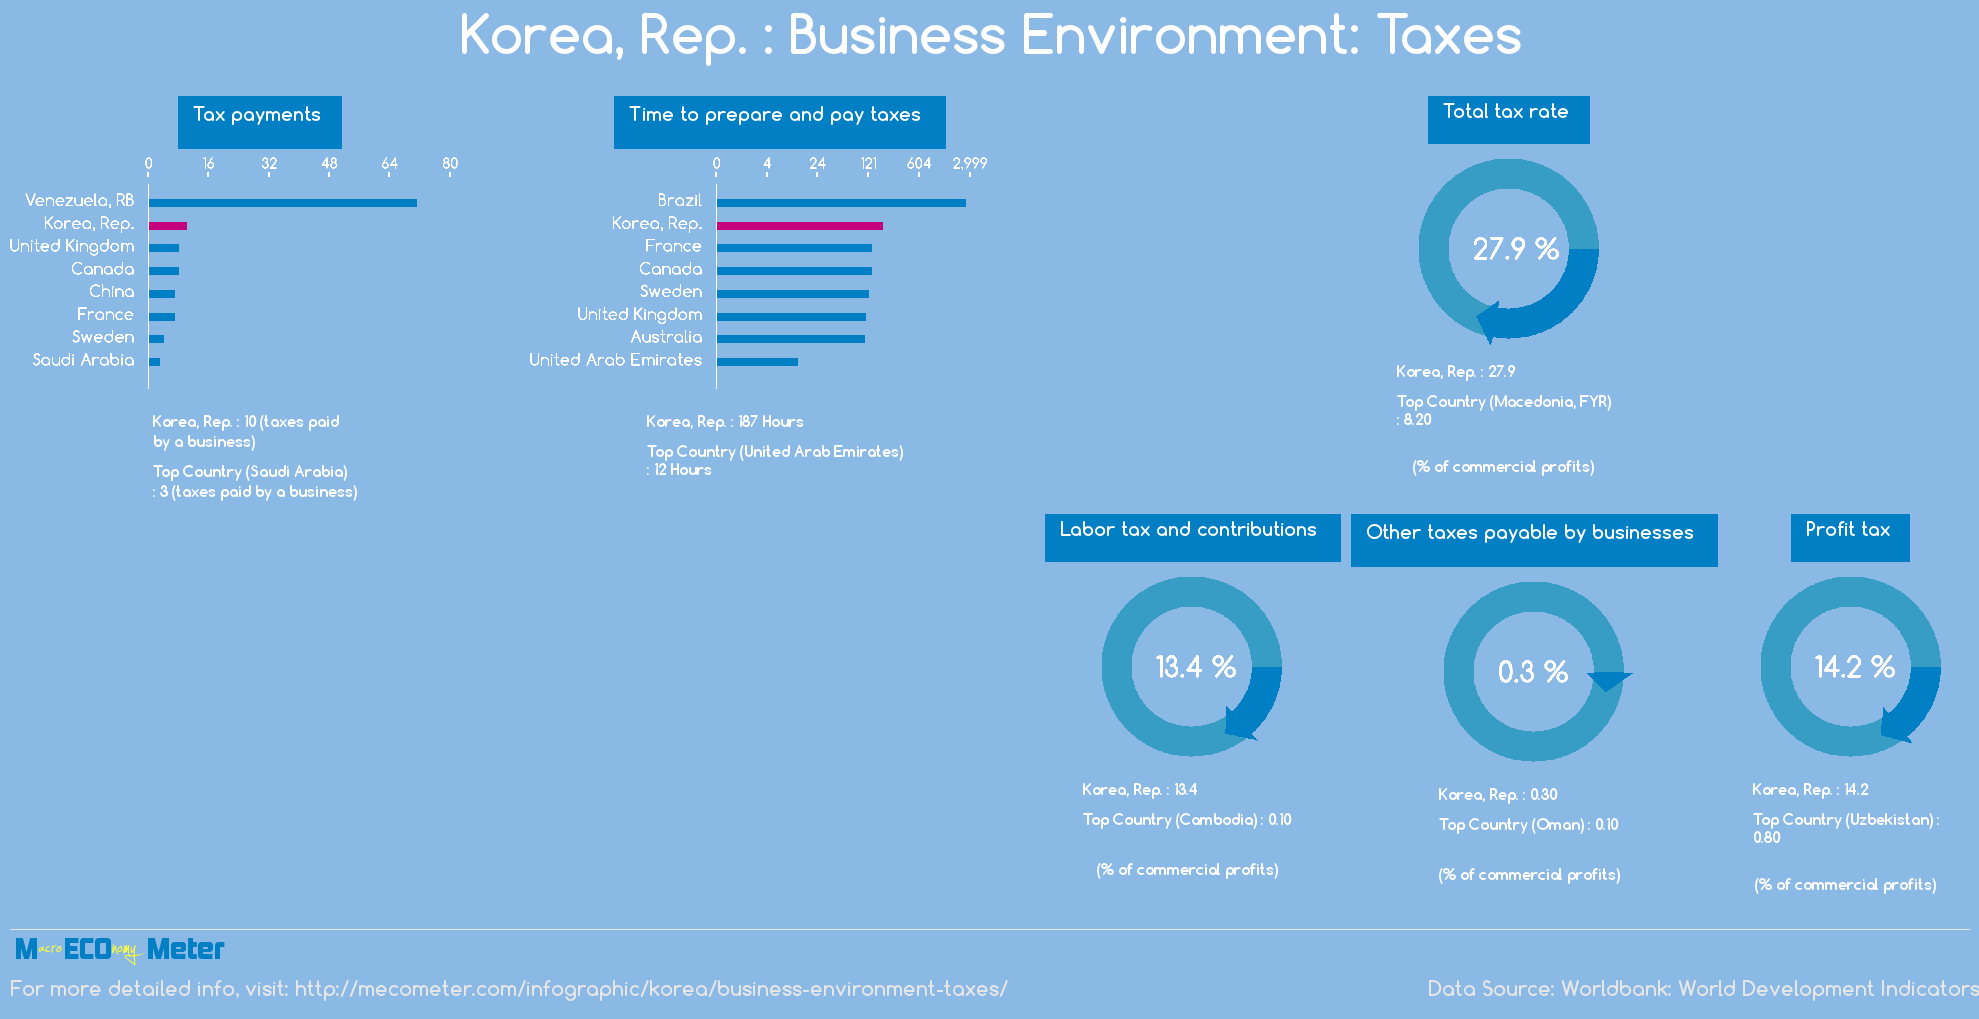 Korea, Rep. : Business Environment: Taxes